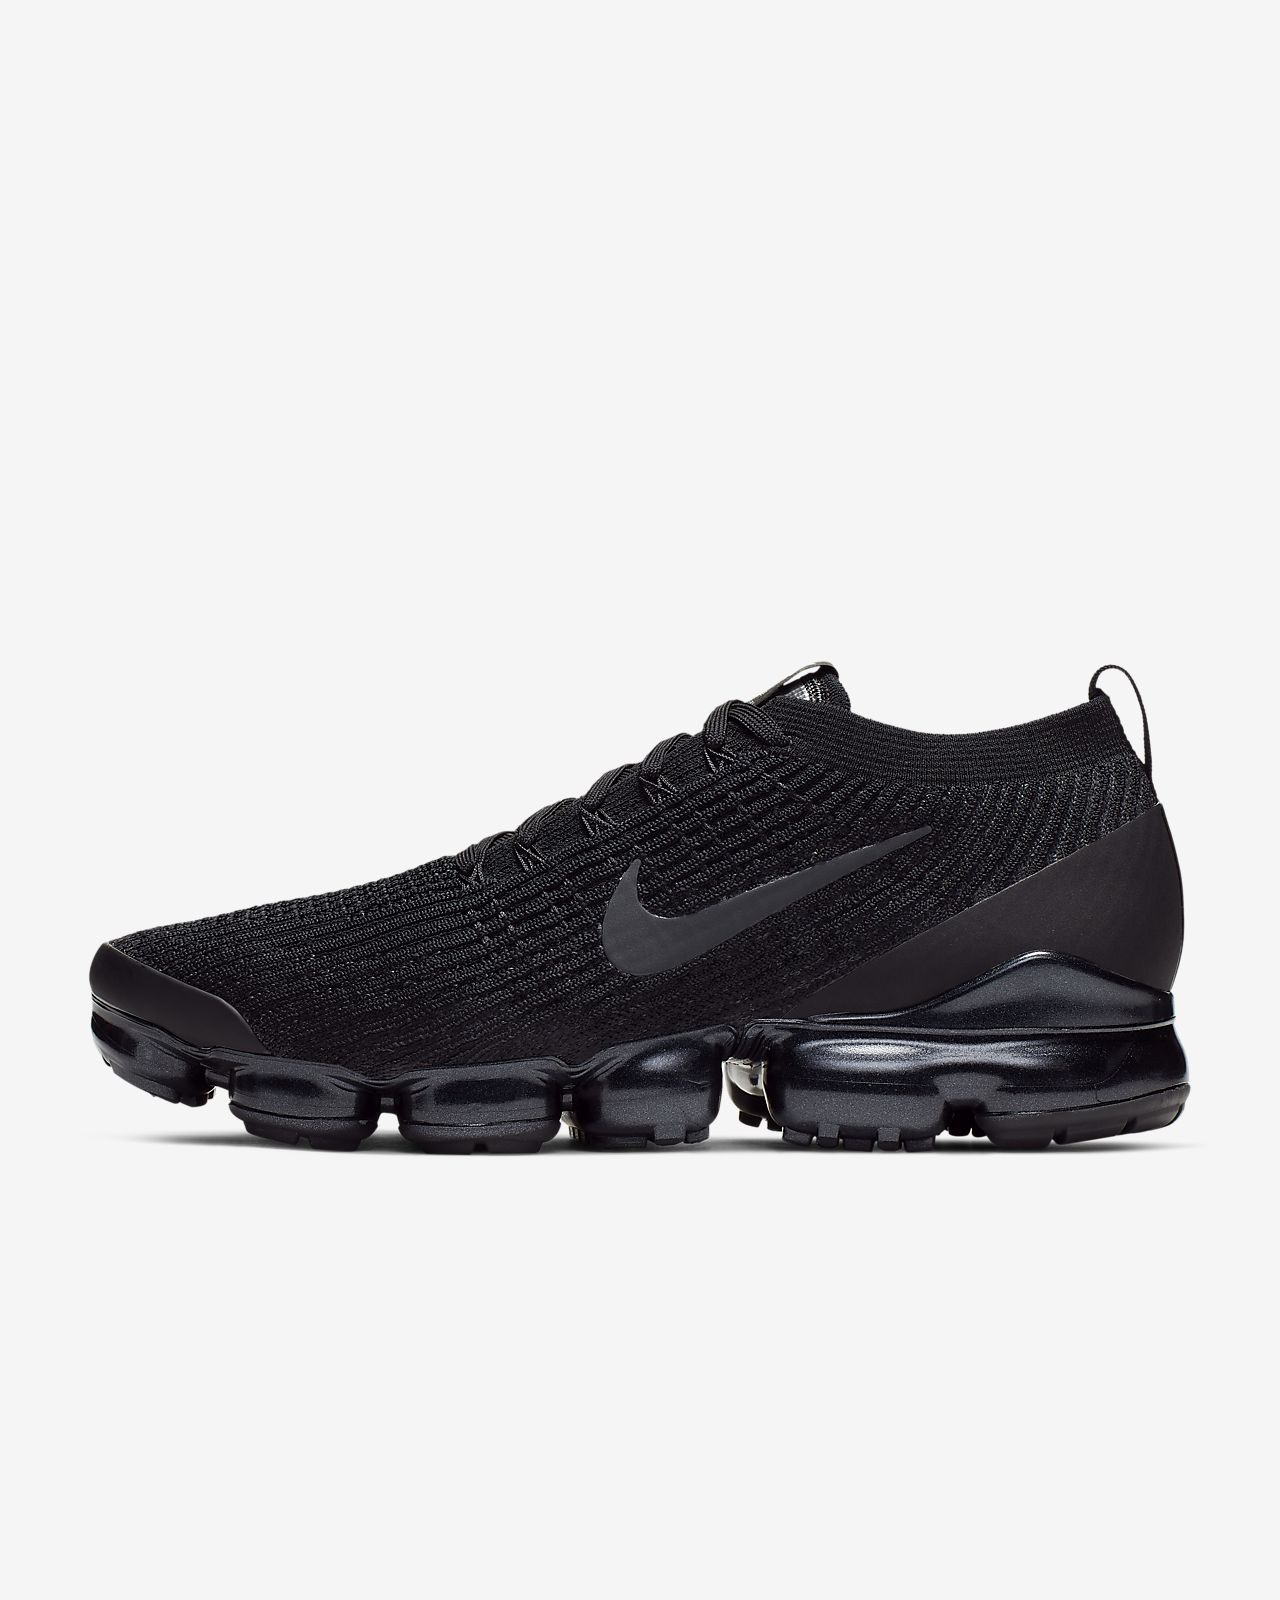 50% price promo codes new high Nike Air VaporMax Flyknit 3 Men's Shoe